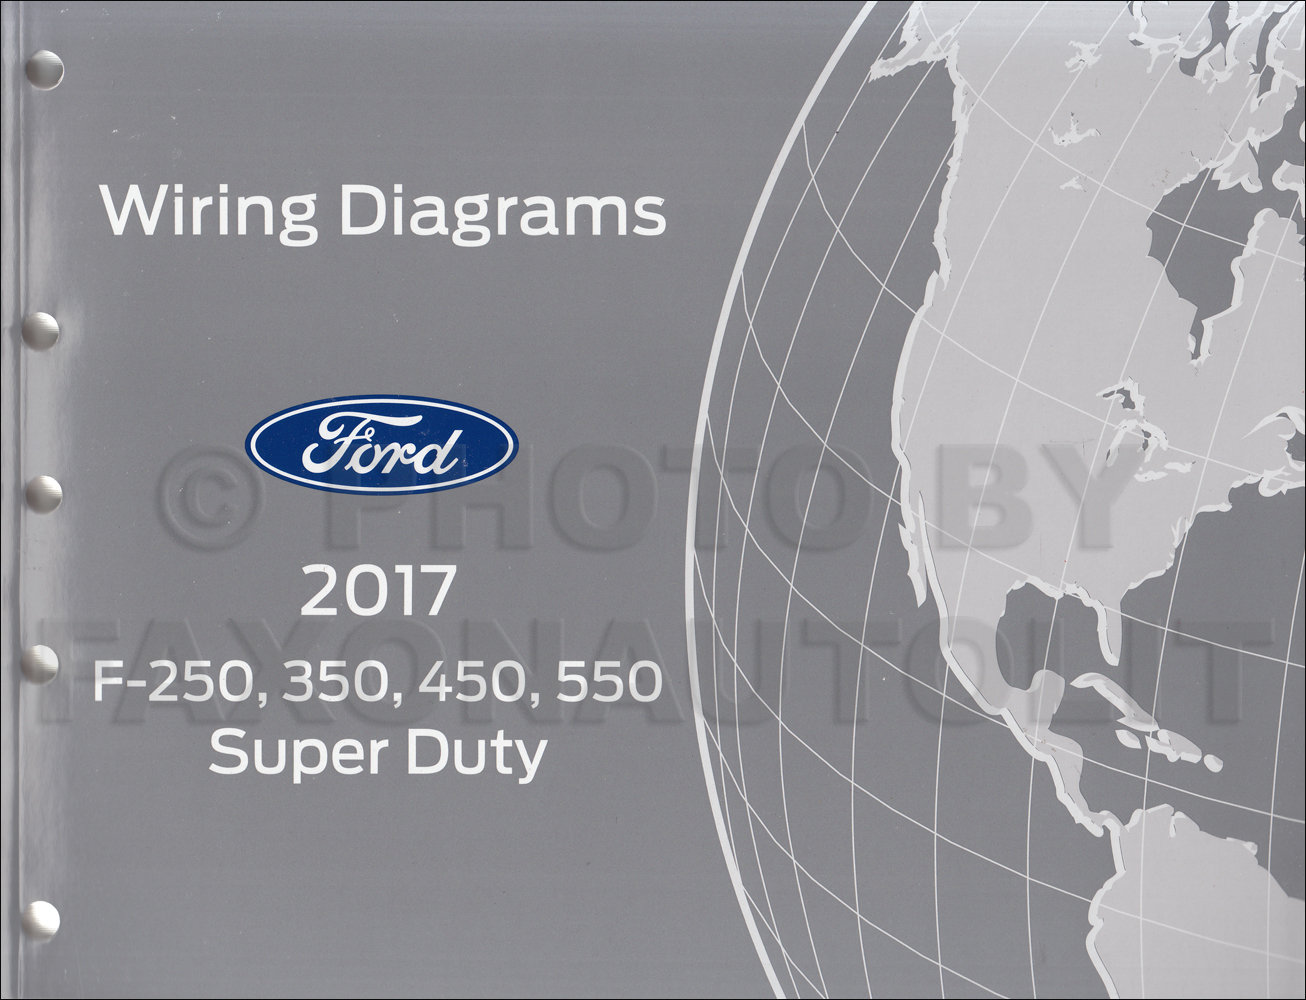 F550 Super Duty Wiring Diagram Strategy Design Plan Ford For Alt 2017 F250 Dutytruck Manual Original Rh Faxonautoliterature Com 2001 Fuse